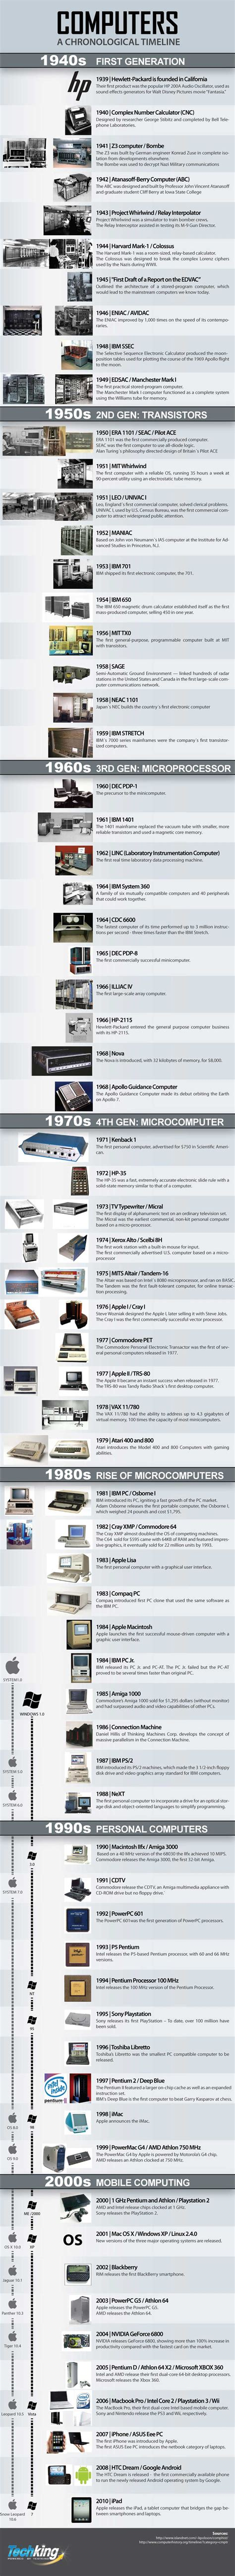 computers an awesome chronological timeline infographic